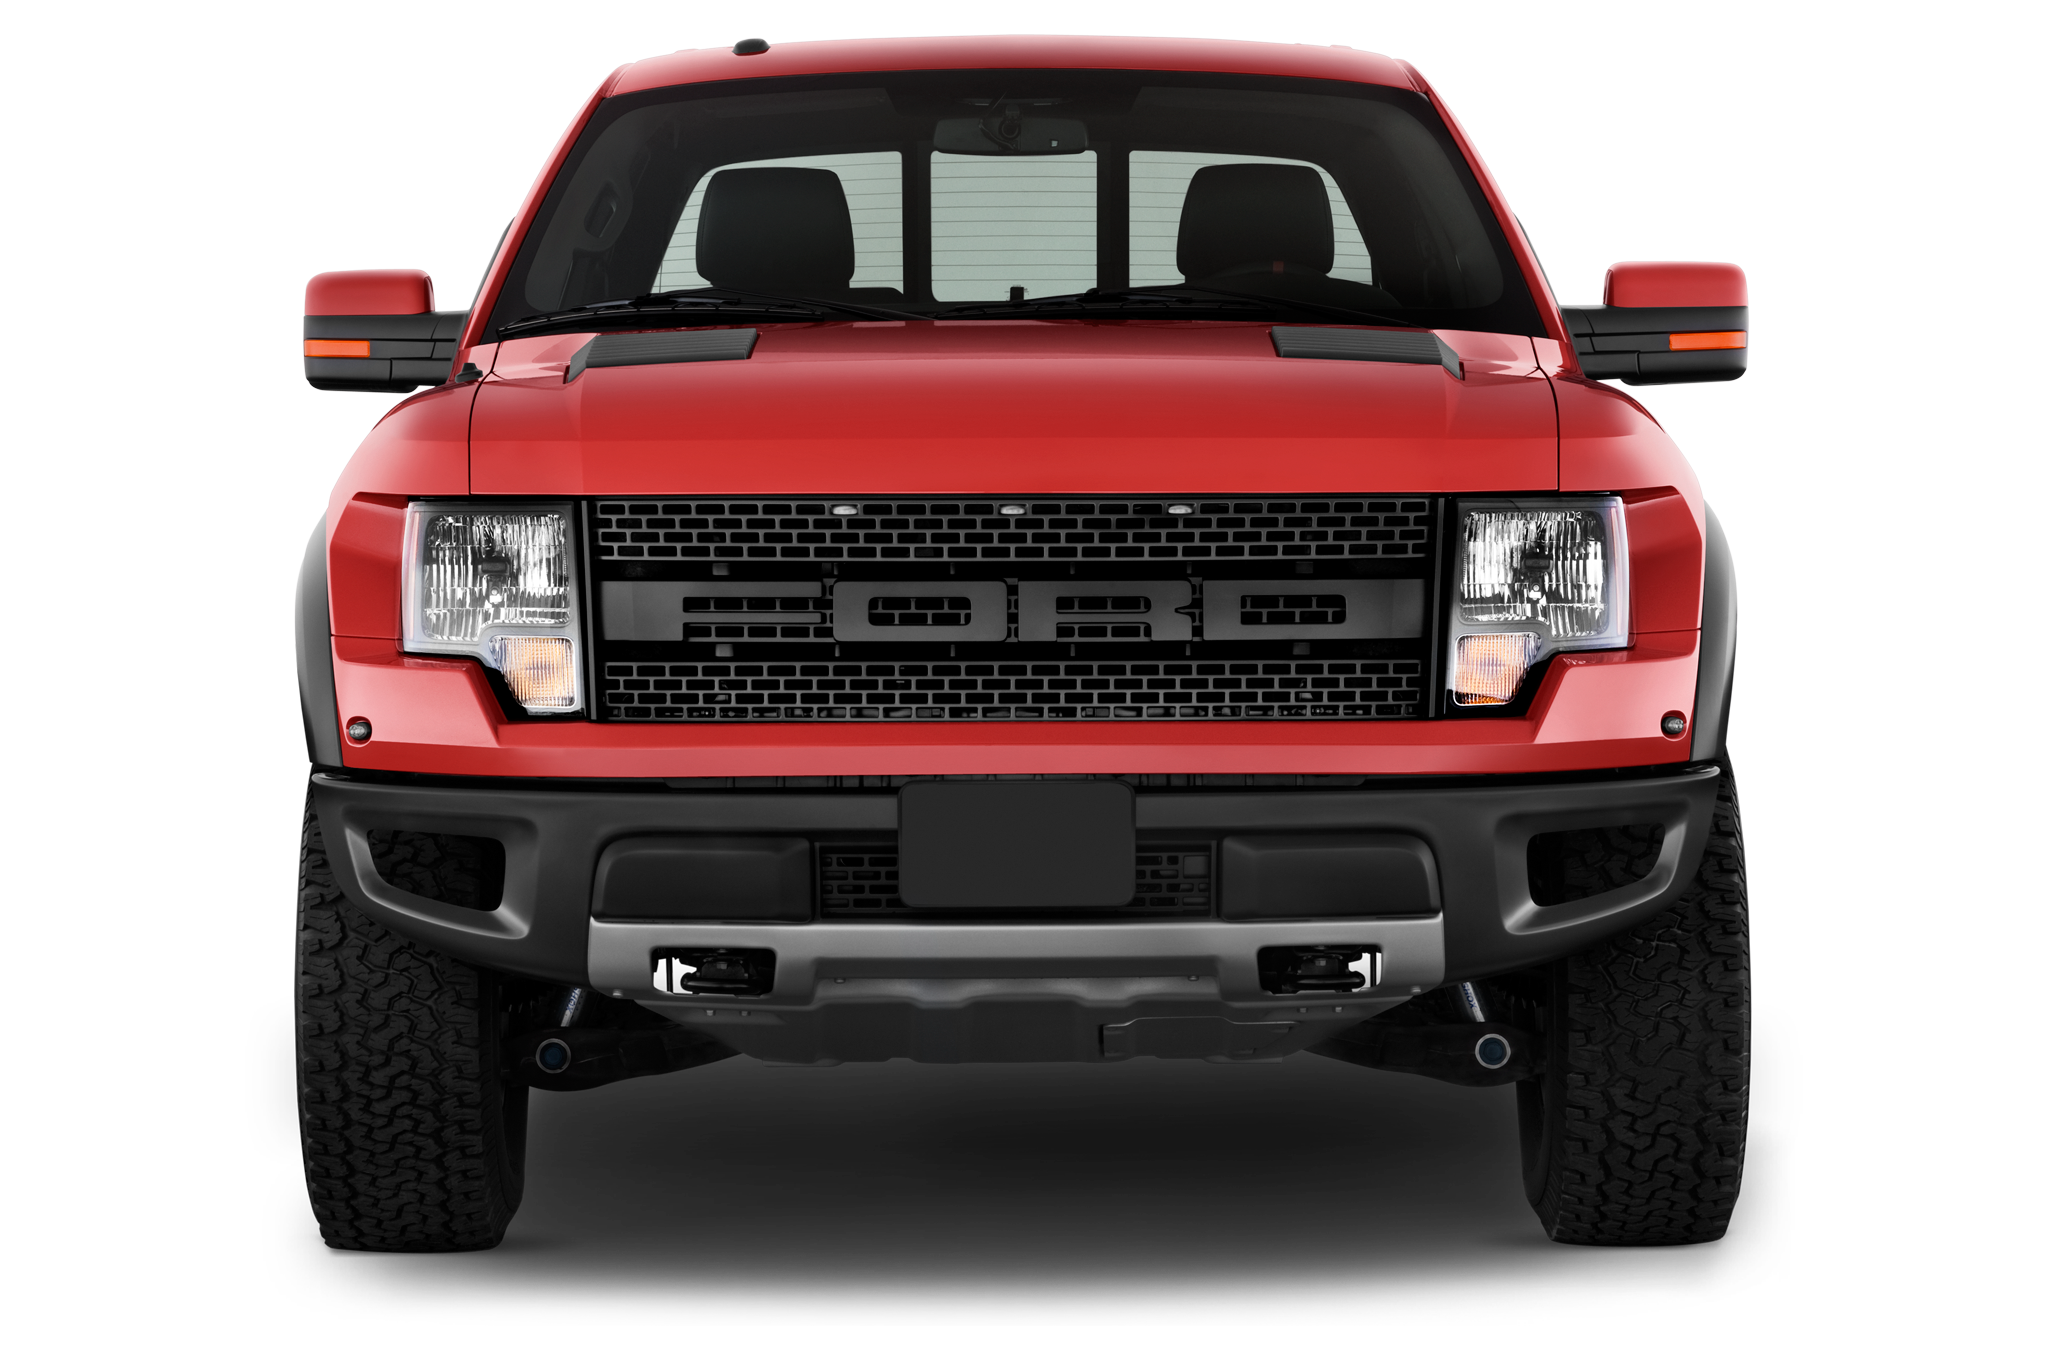 2014 Ford F 150 Svt Raptor Special Edition Unveiled